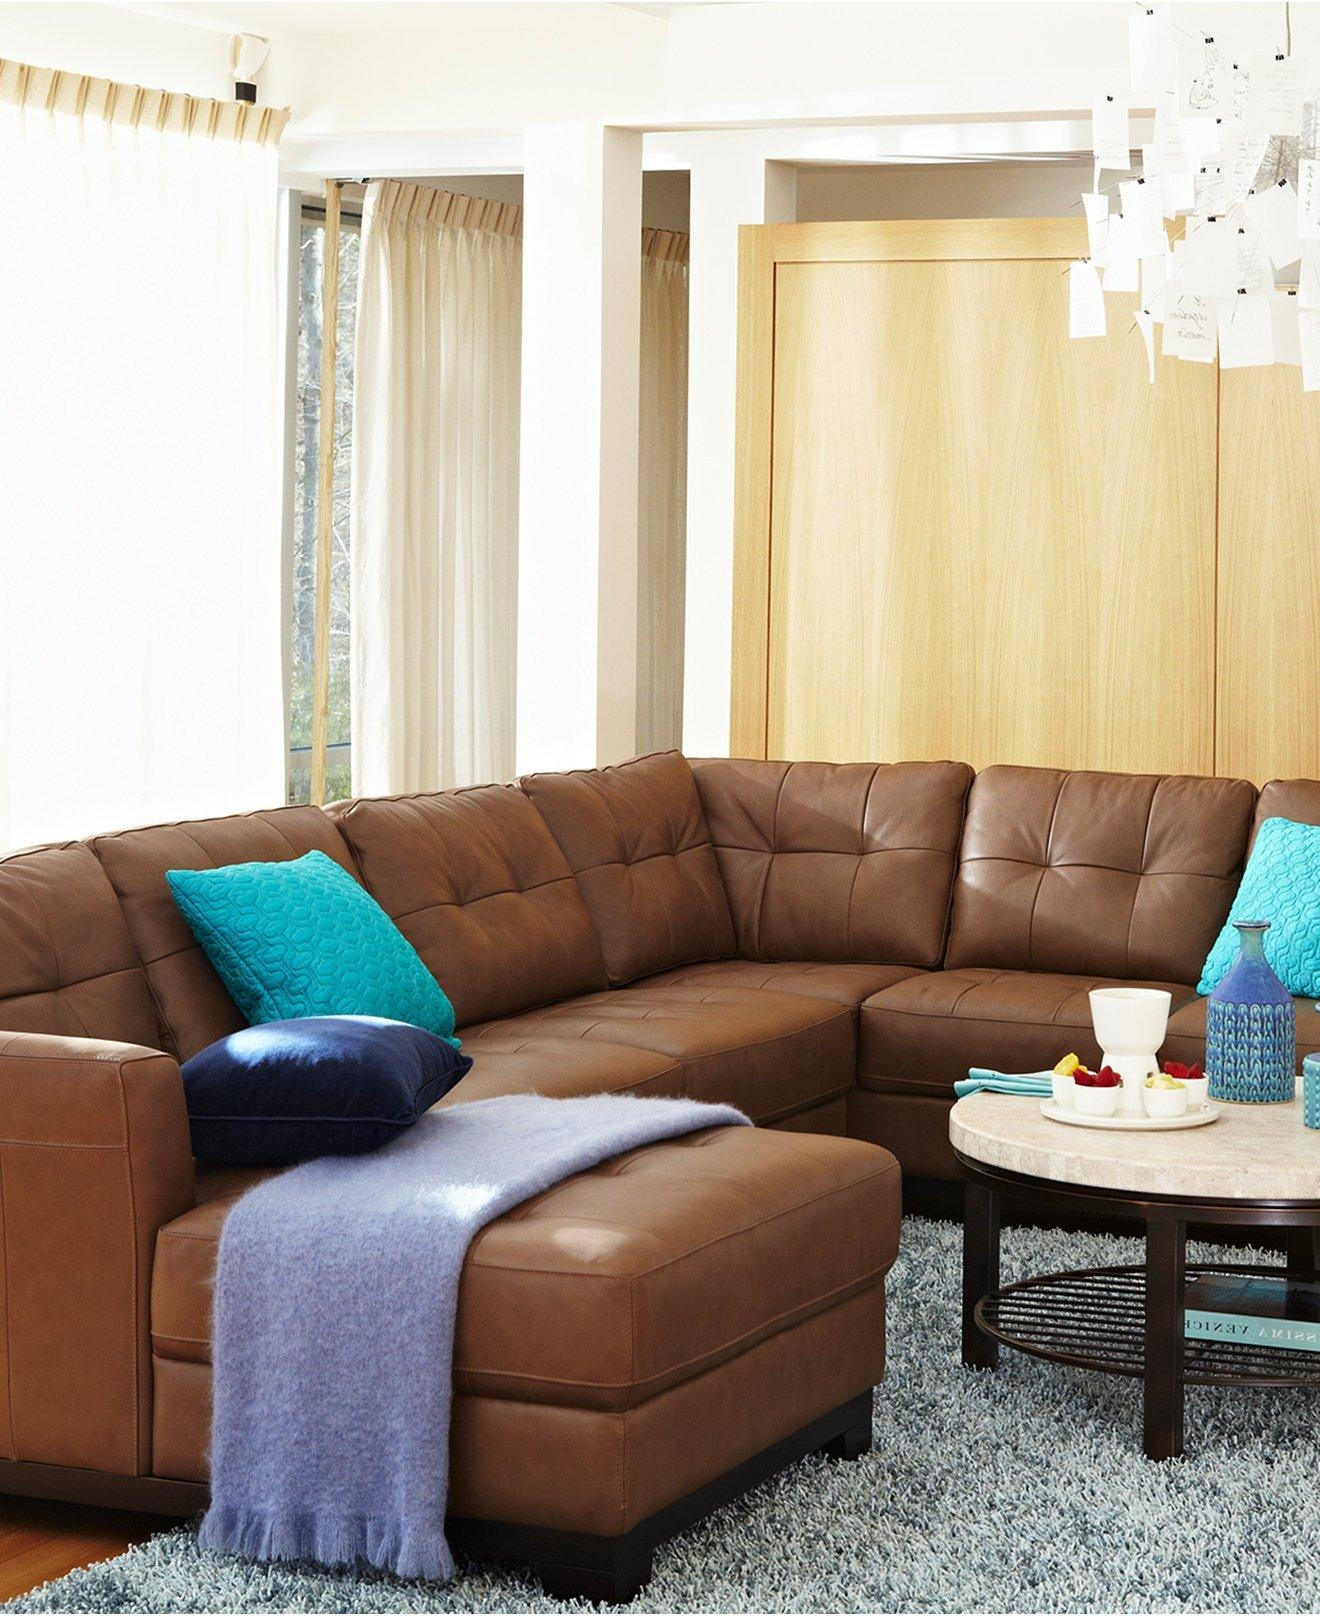 Sofas: Macys Leather Furniture | Macys Sectional | Macys Sectional Inside Macys Leather Sectional Sofa (View 10 of 20)